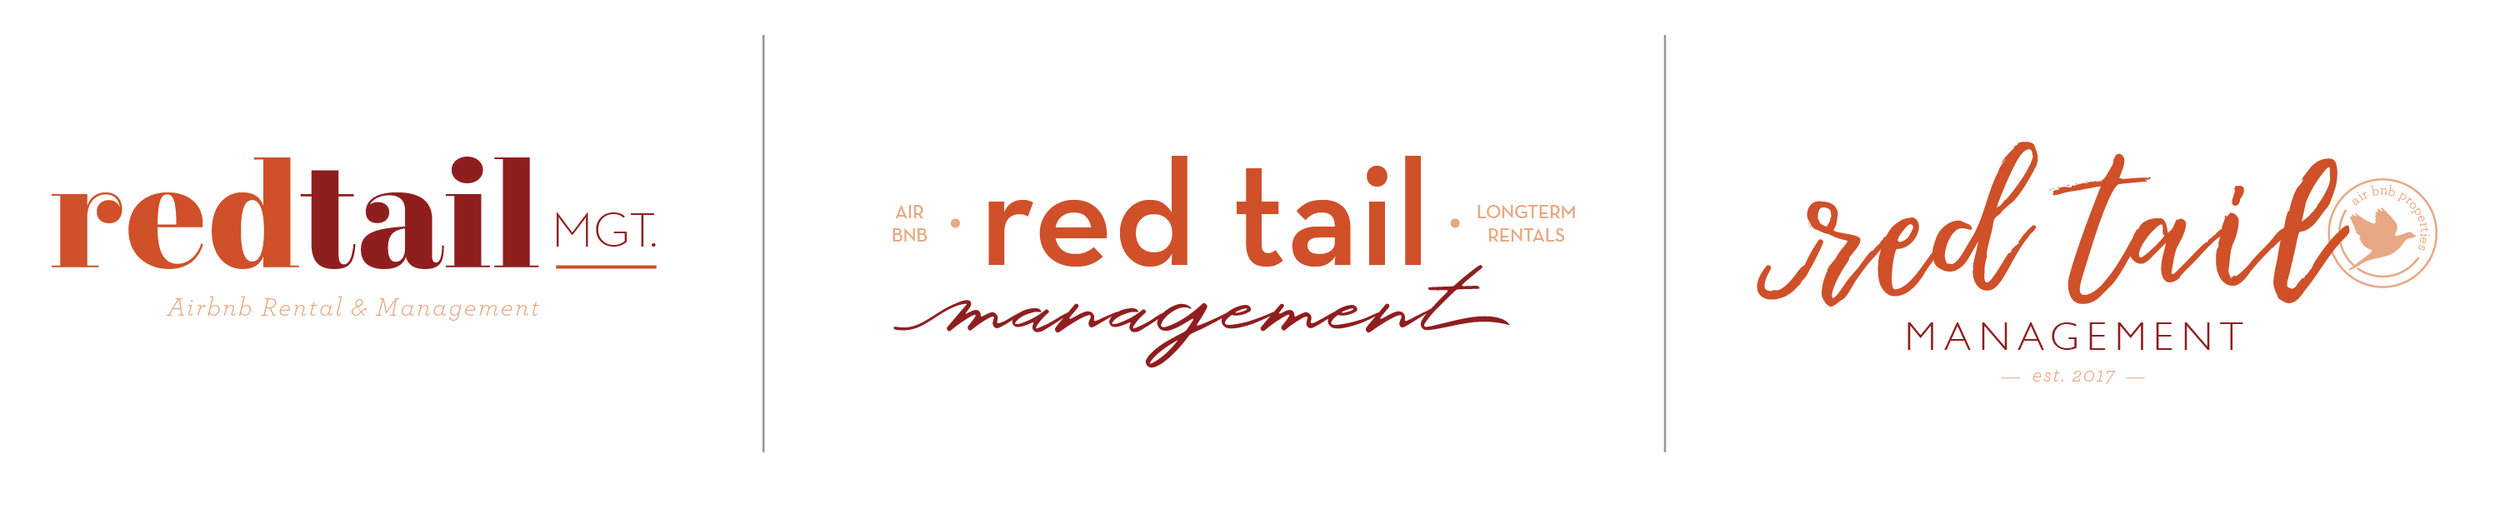 RedTailManagement_BrandReveal-01.jpg